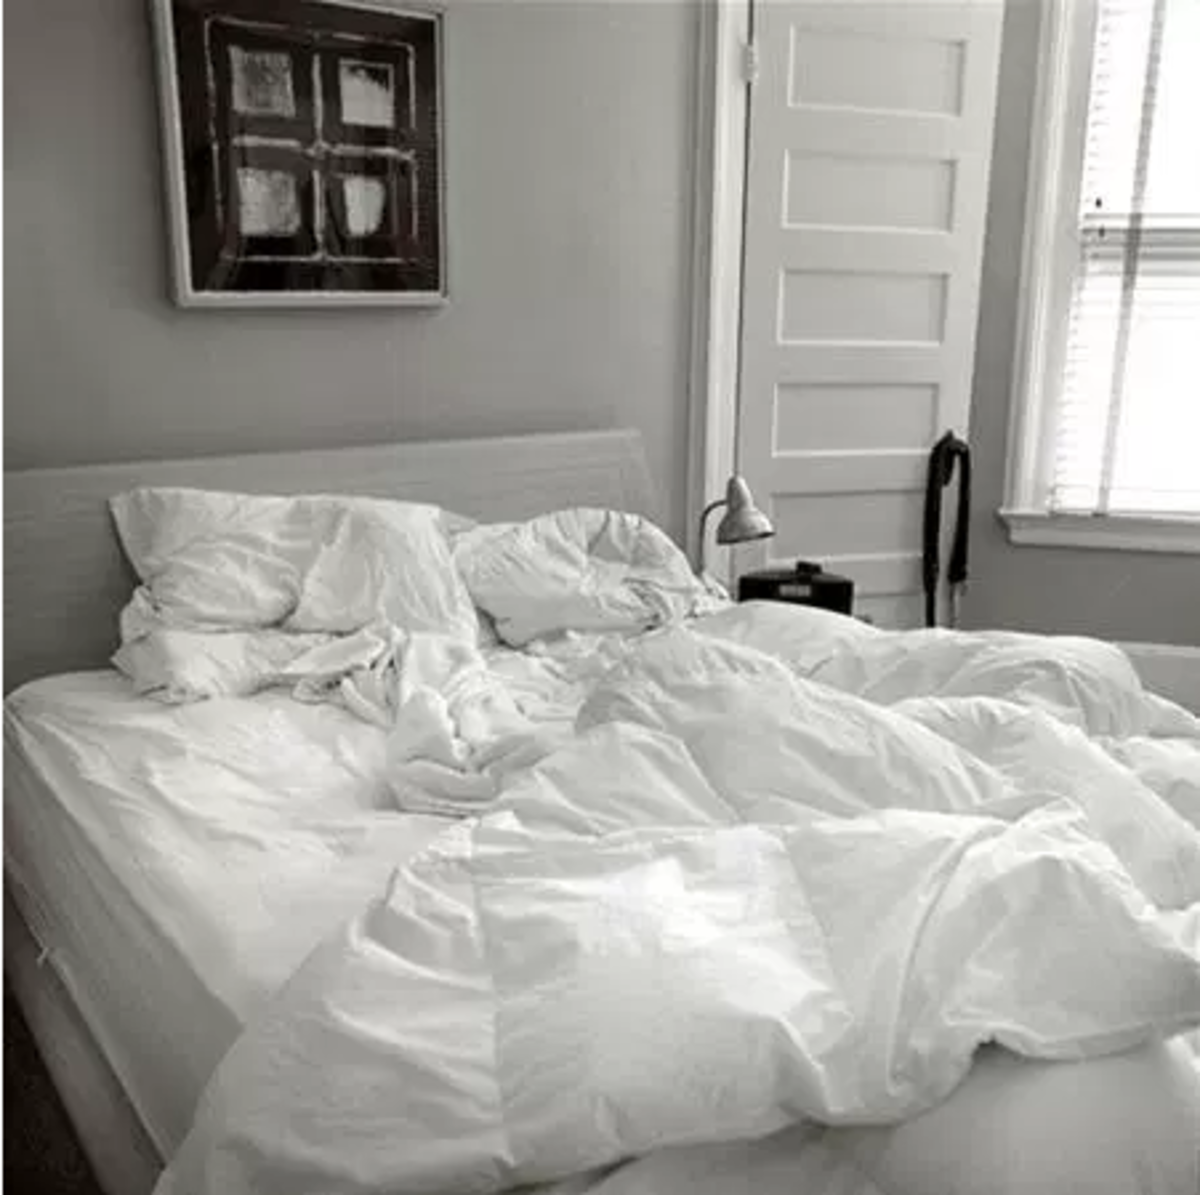 Leaving an unmade bed may be costing you good calorie burning habits.